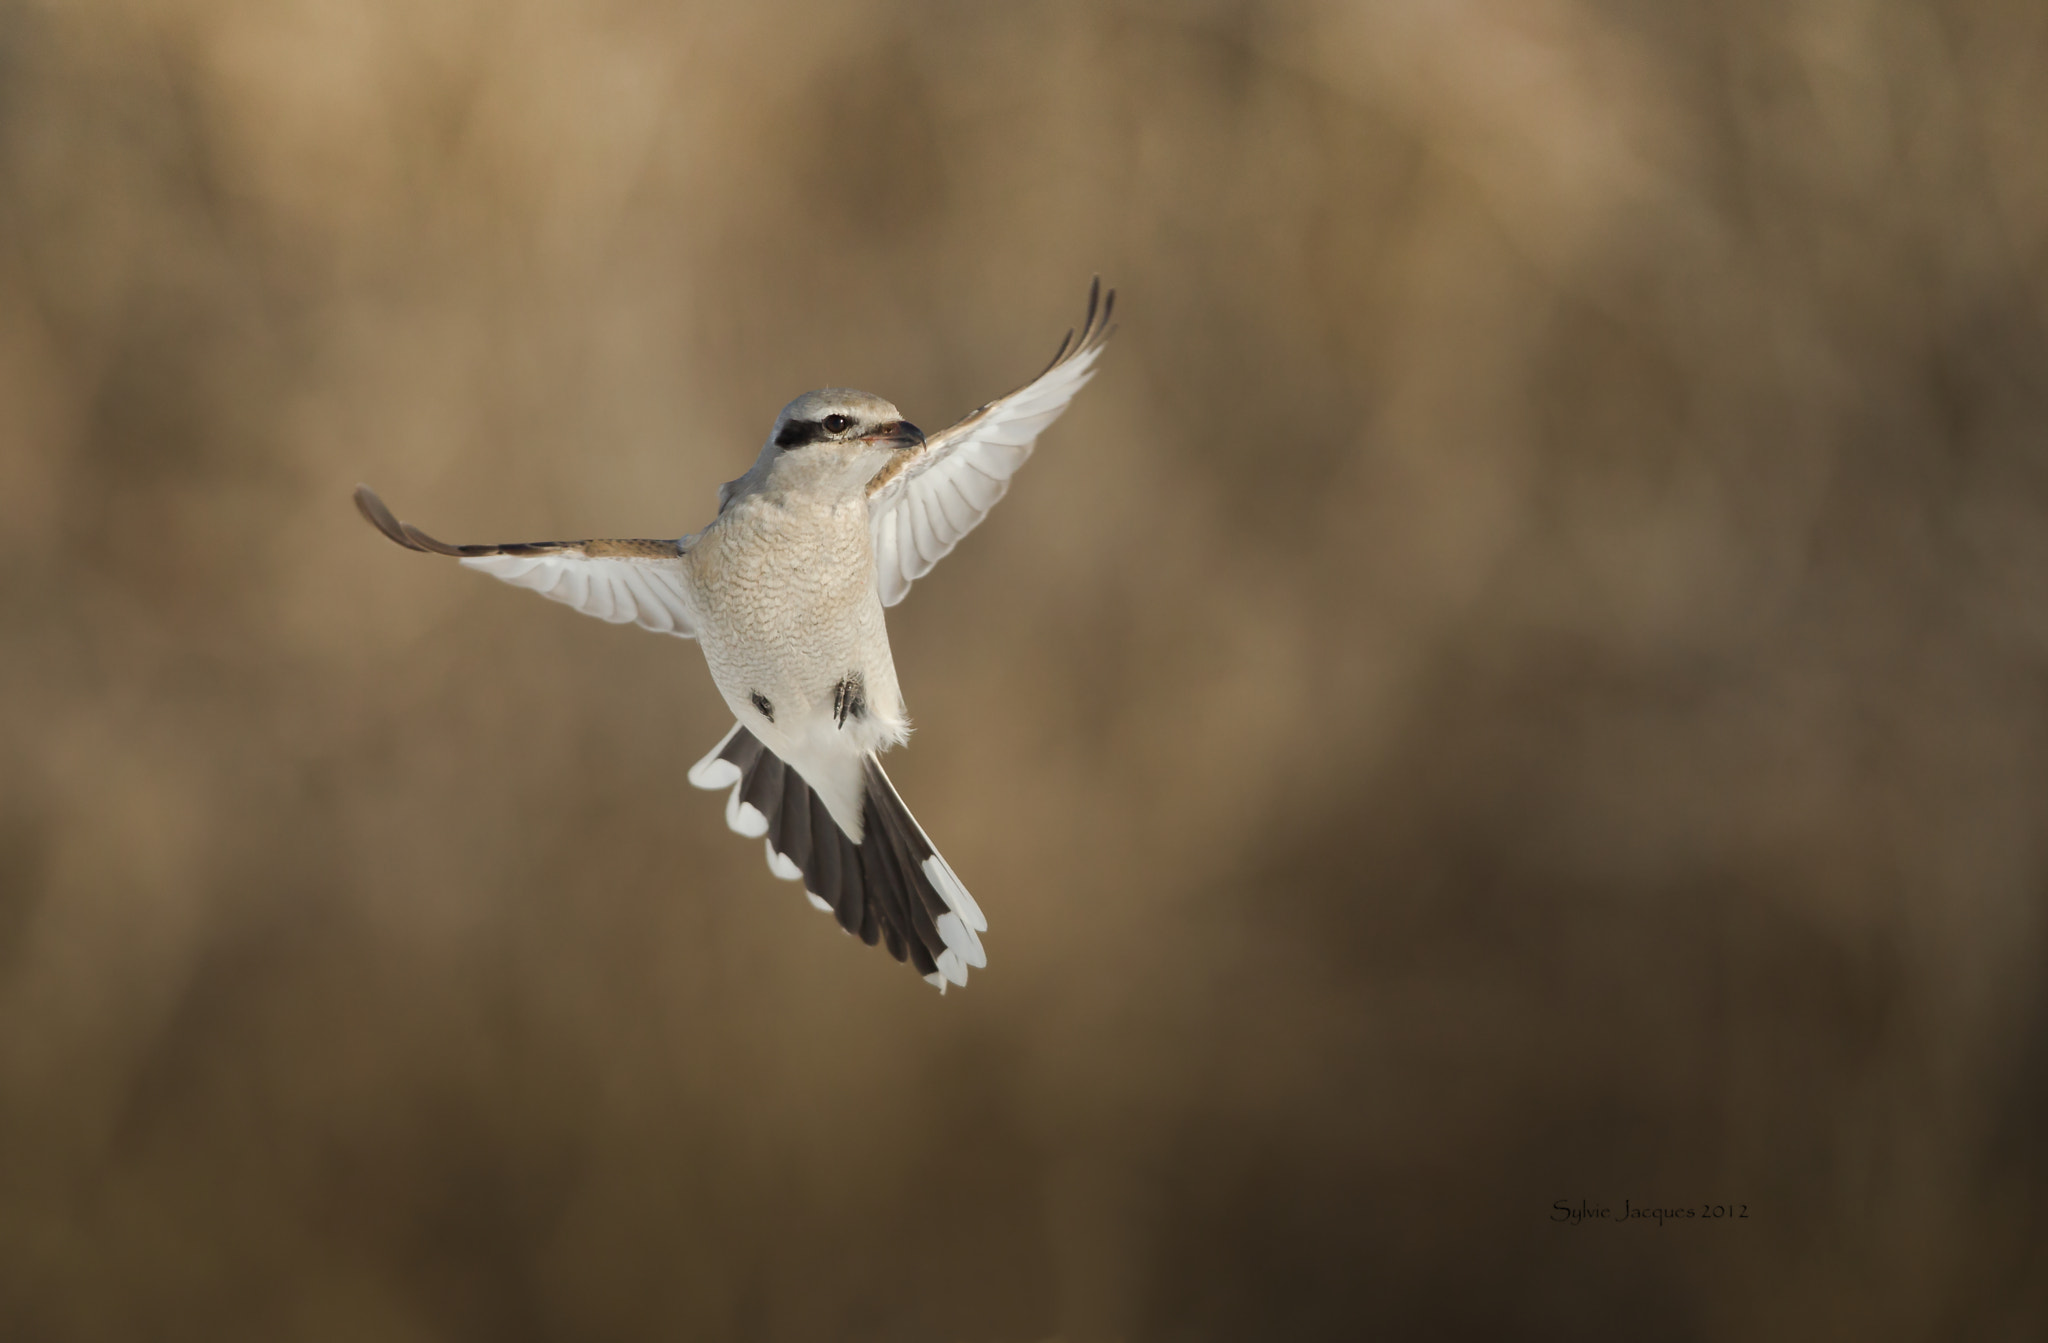 Photograph Northern Shrike / Pie grieche grise by Sylvie Jacques on 500px